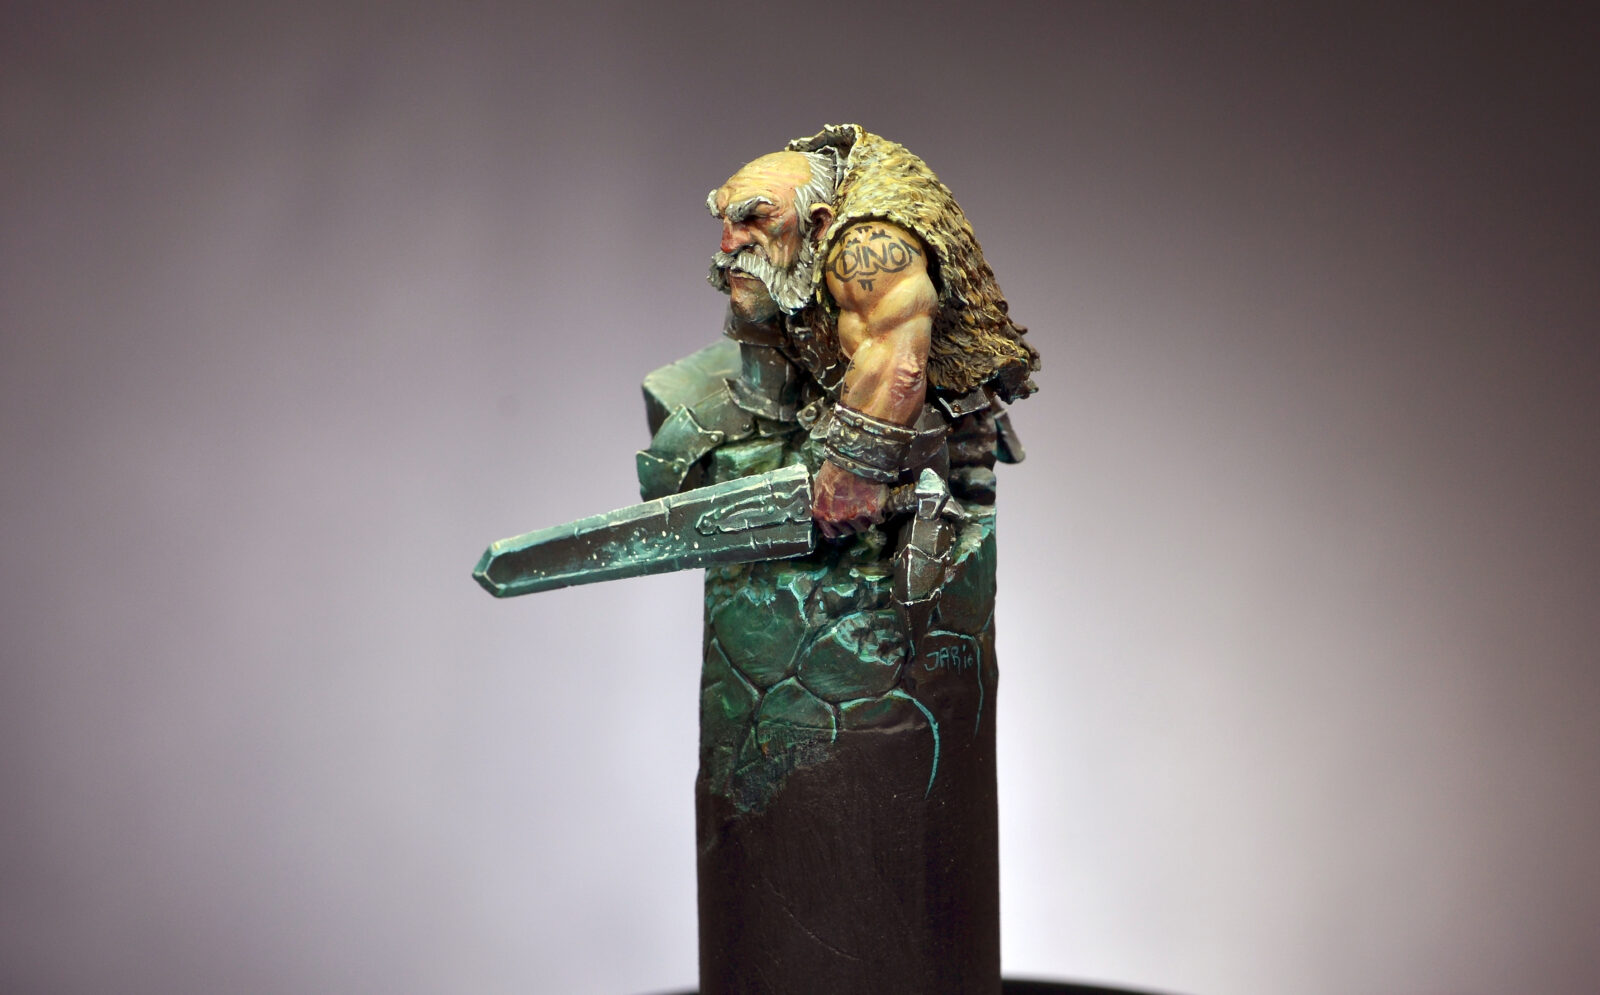 Orc Warboss11